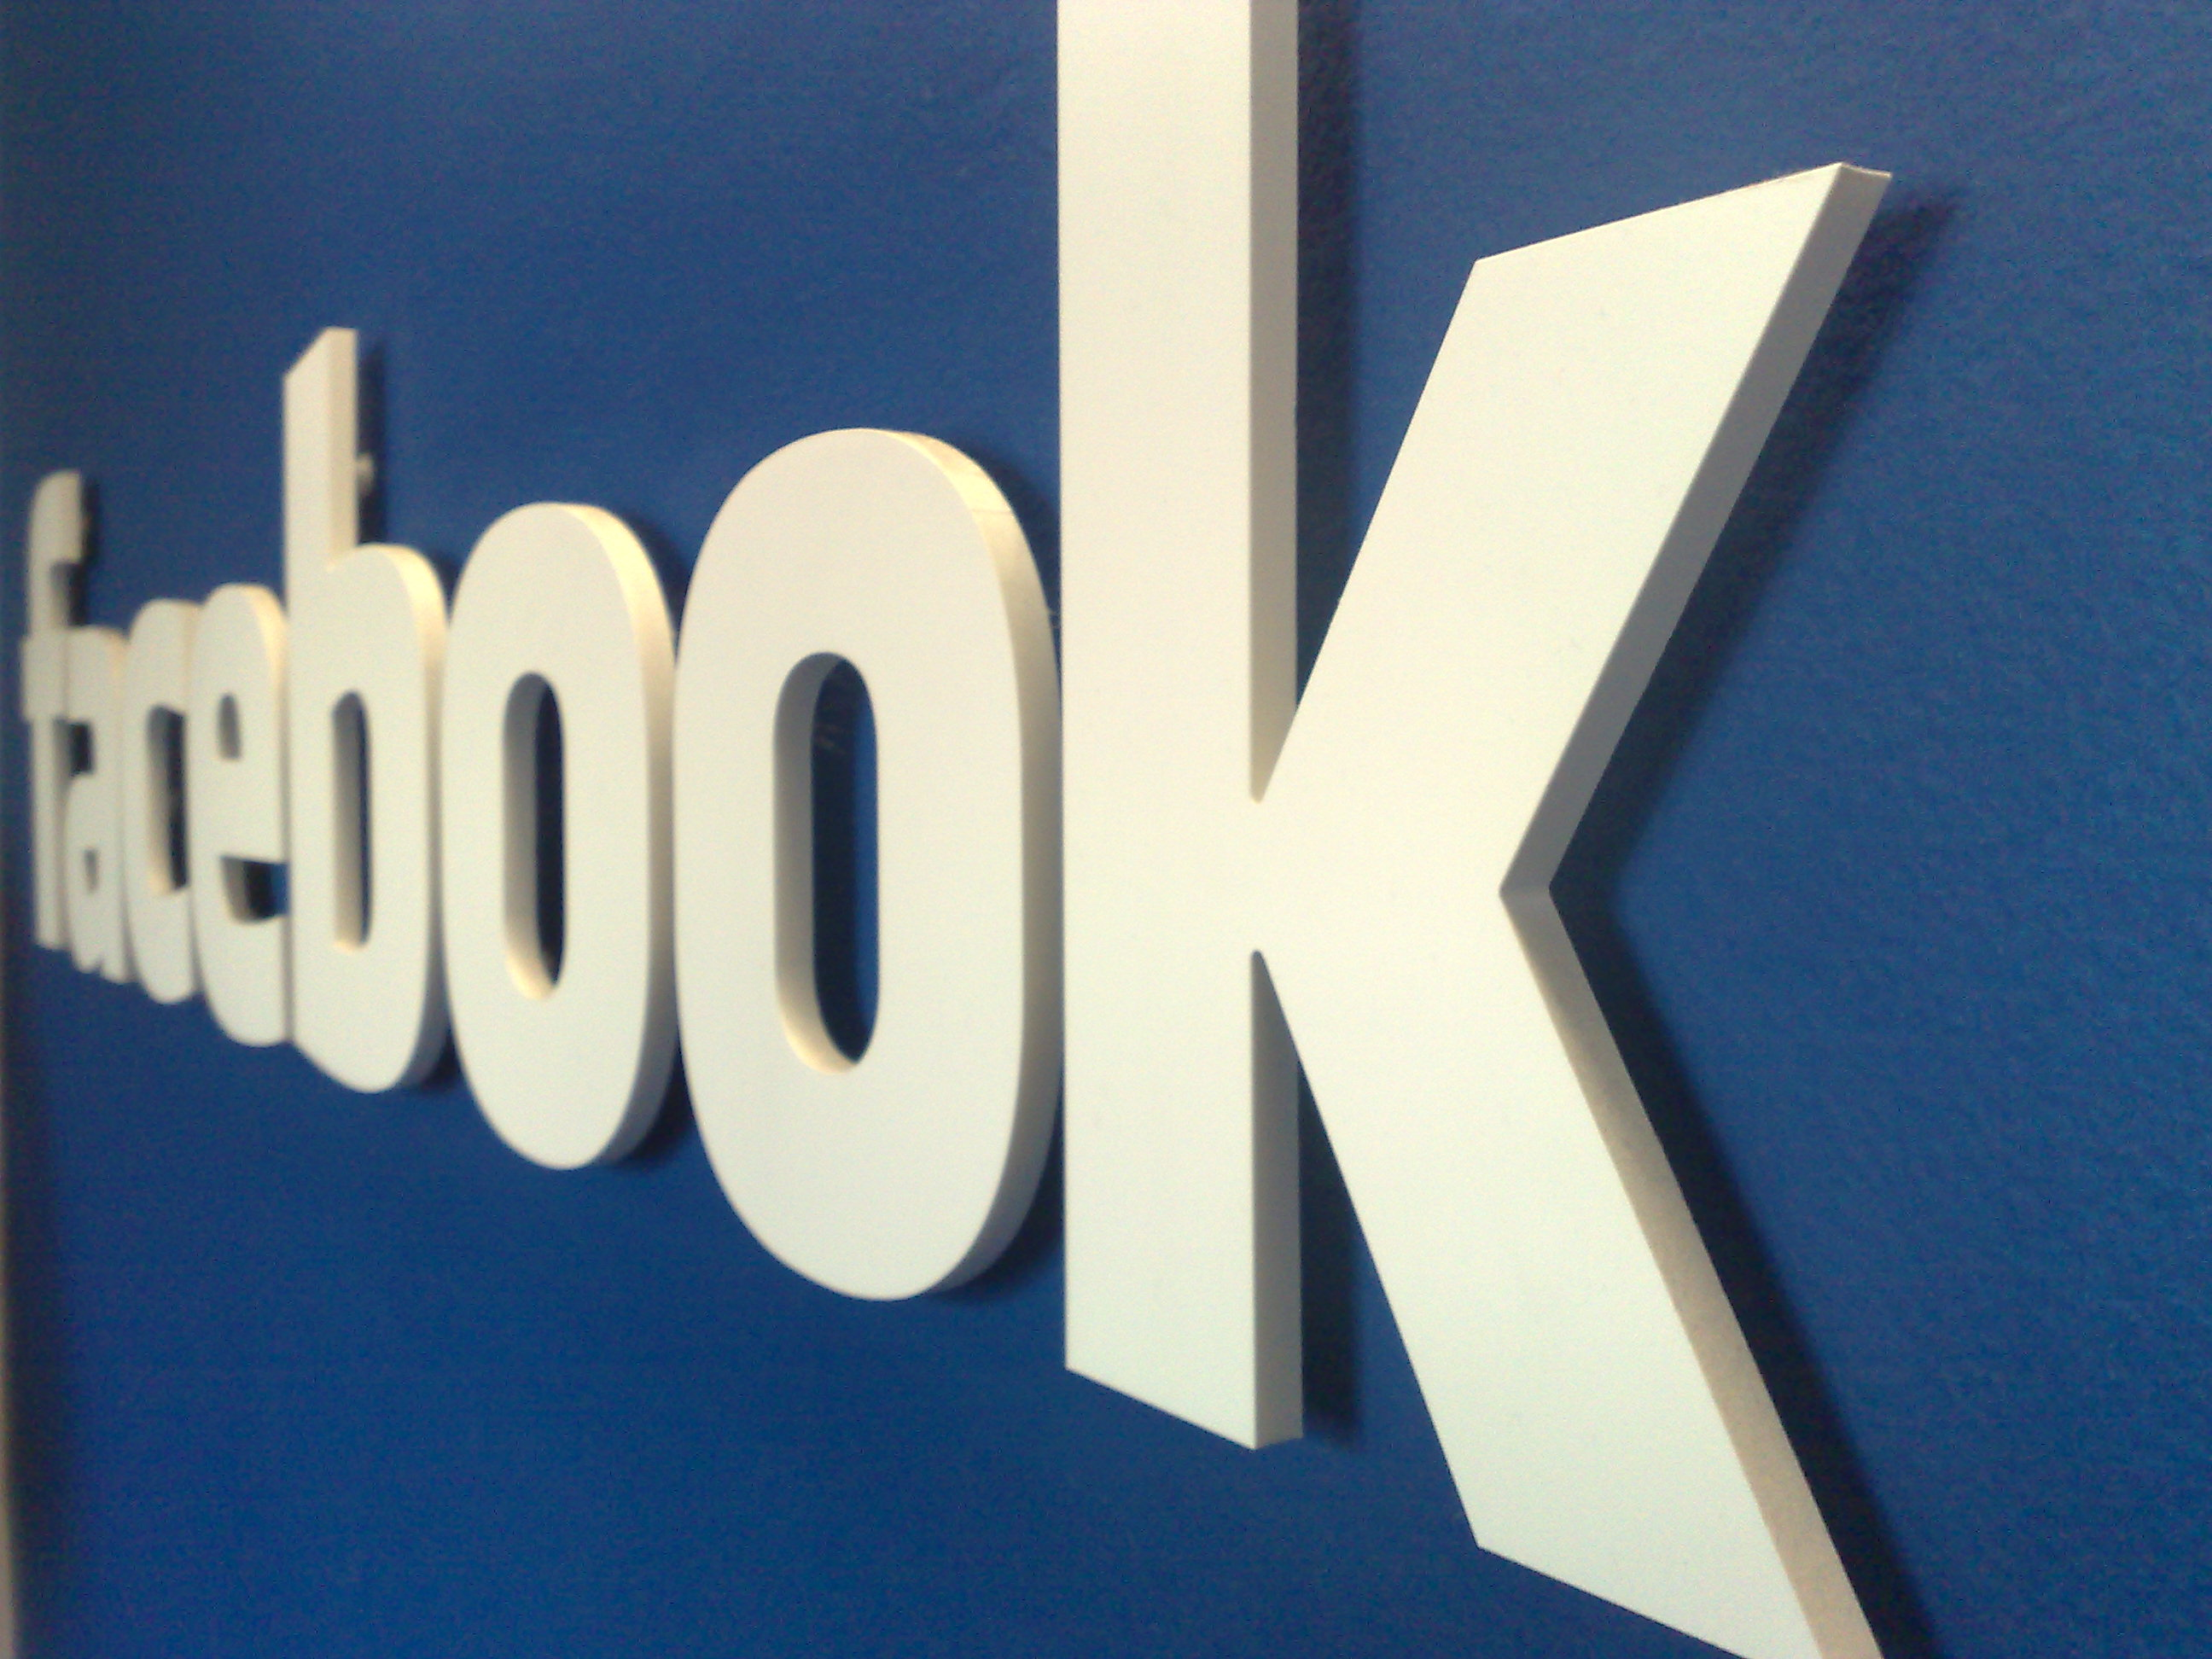 No big surprises, Facebook is still not planning to enter China, exec confirms